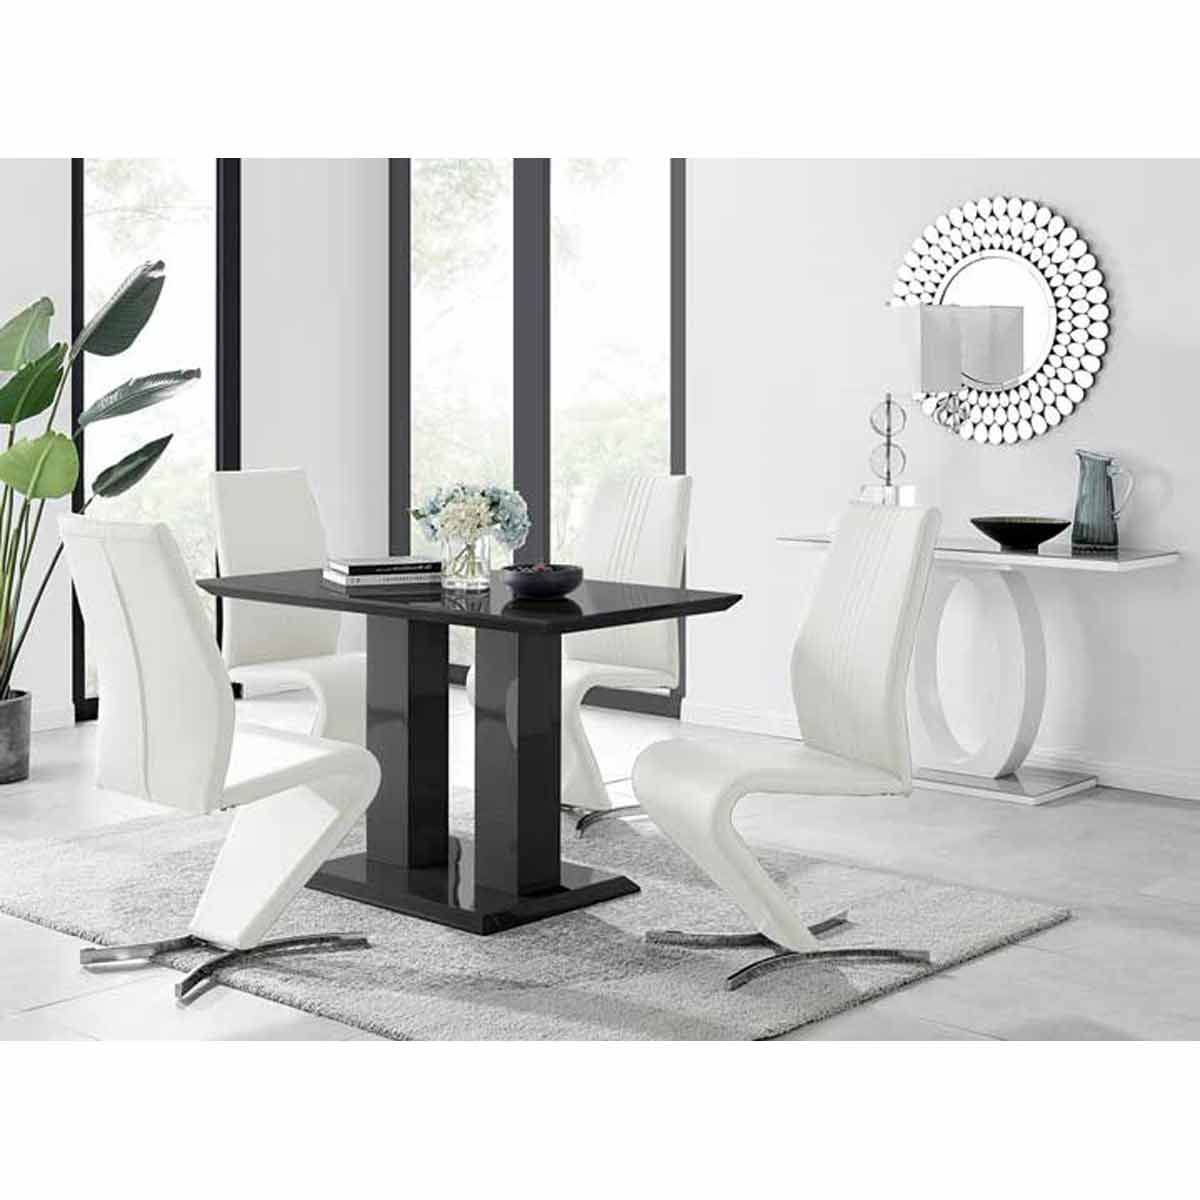 Furniture Box Imperia 4 Modern Black High Gloss Dining Table And 4 White Luxury Willow Chairs Set